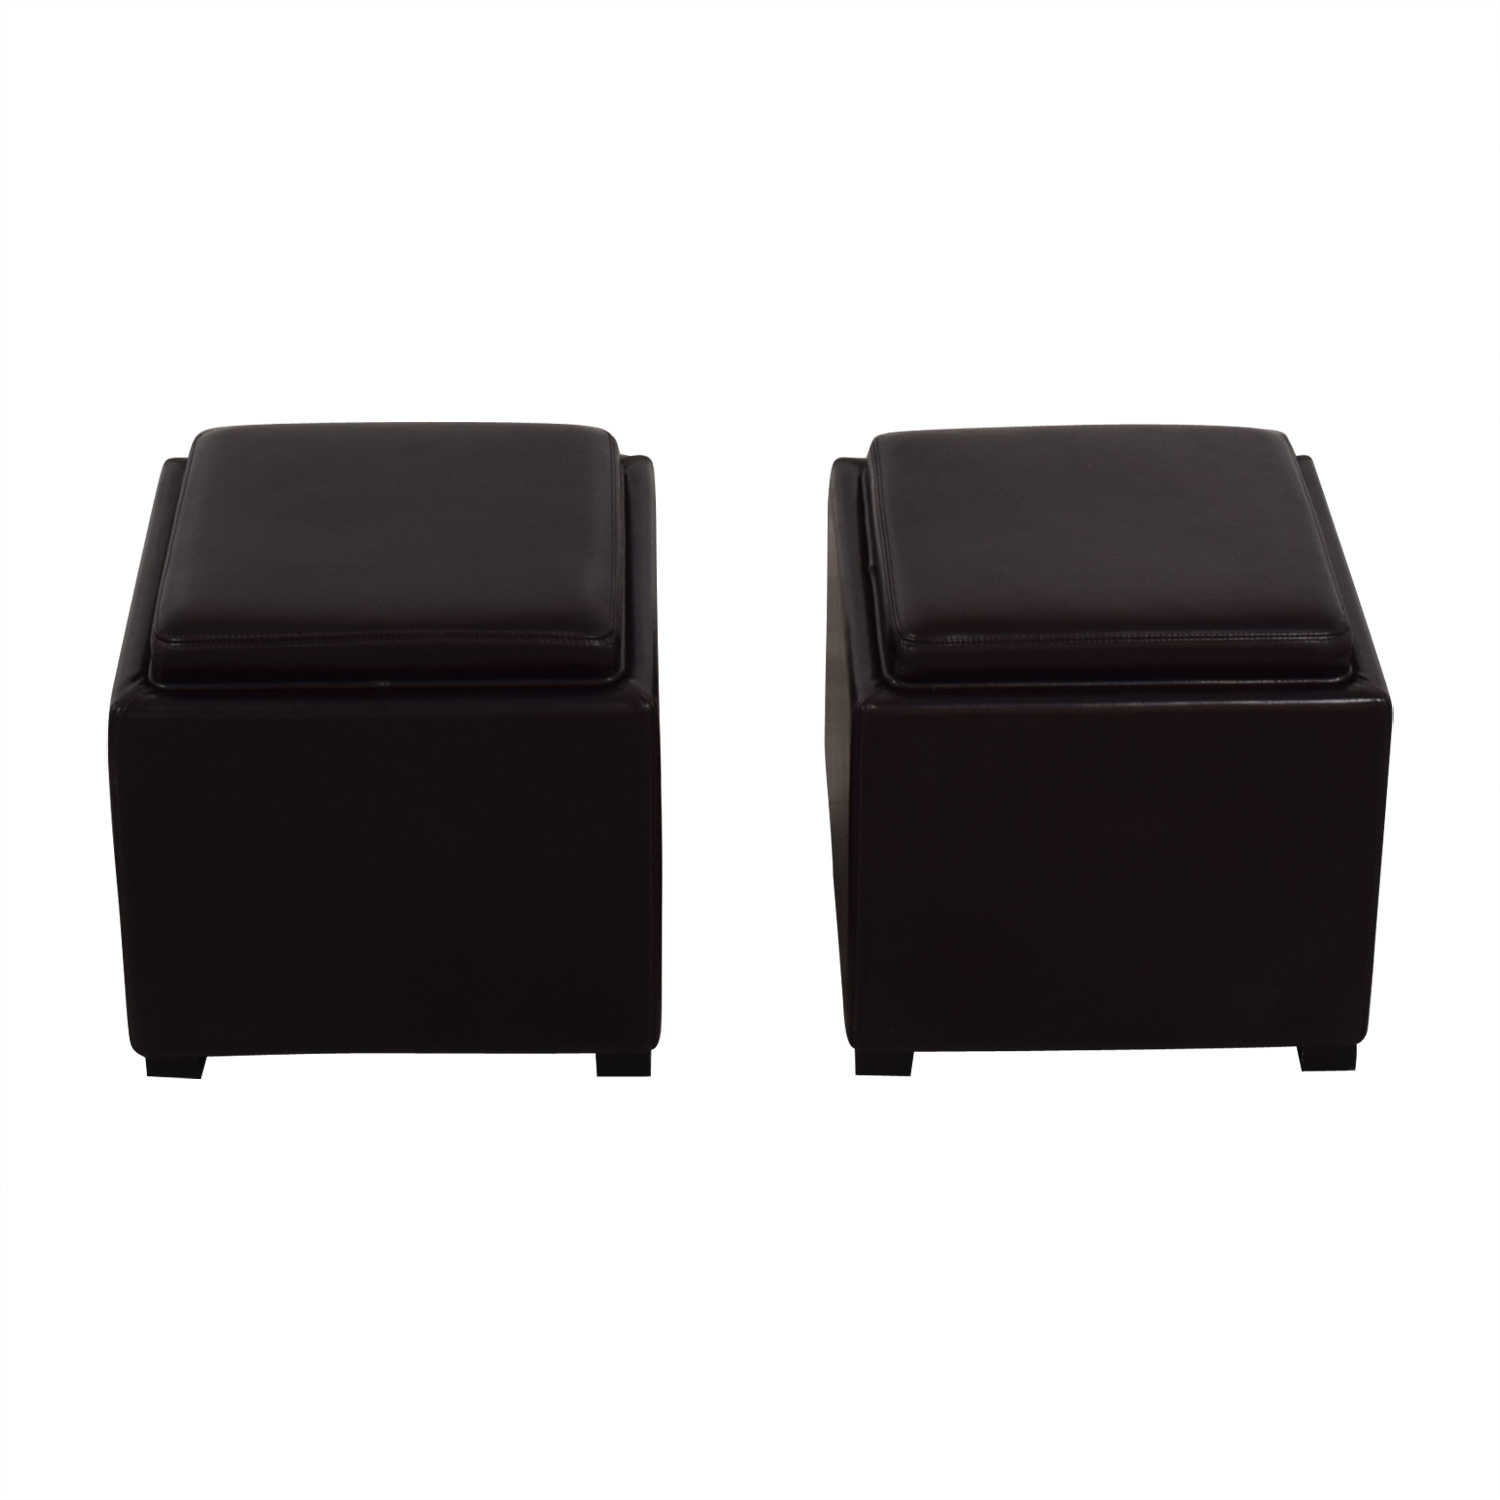 Crate & Barrel Crate & Barrel Brown Leather Storage Ottomans second hand